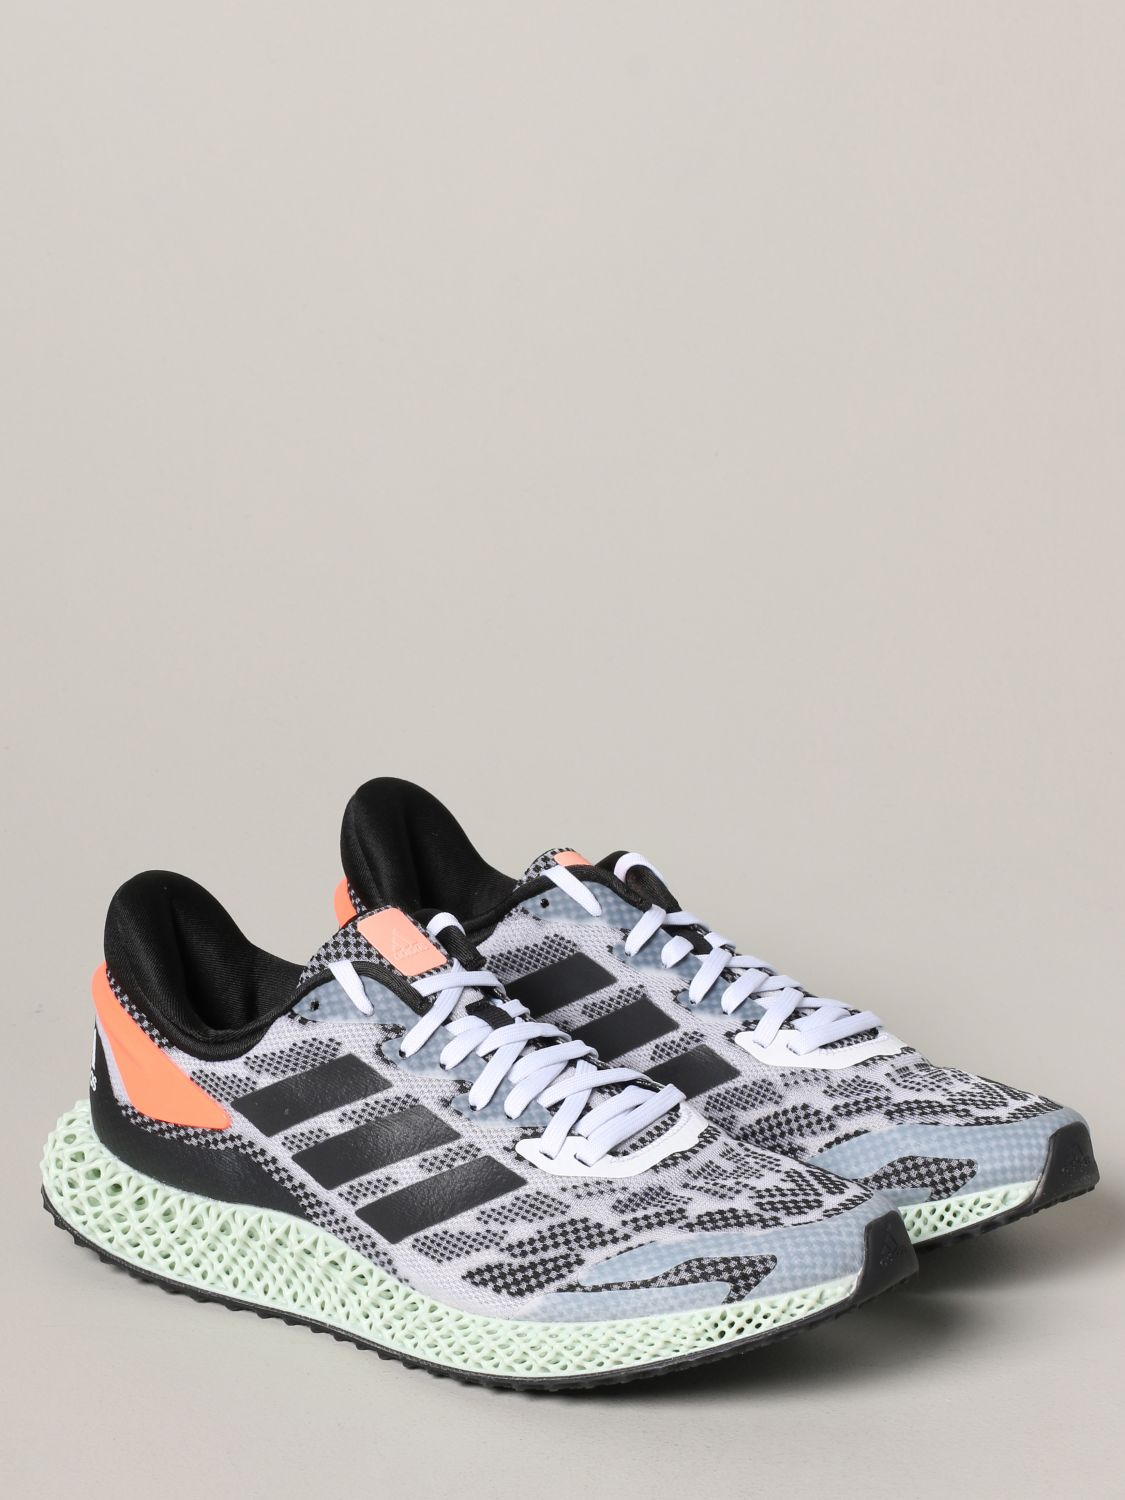 运动鞋 Adidas Originals: Adidas Originals 4d run 1.0 运动鞋 白色 2